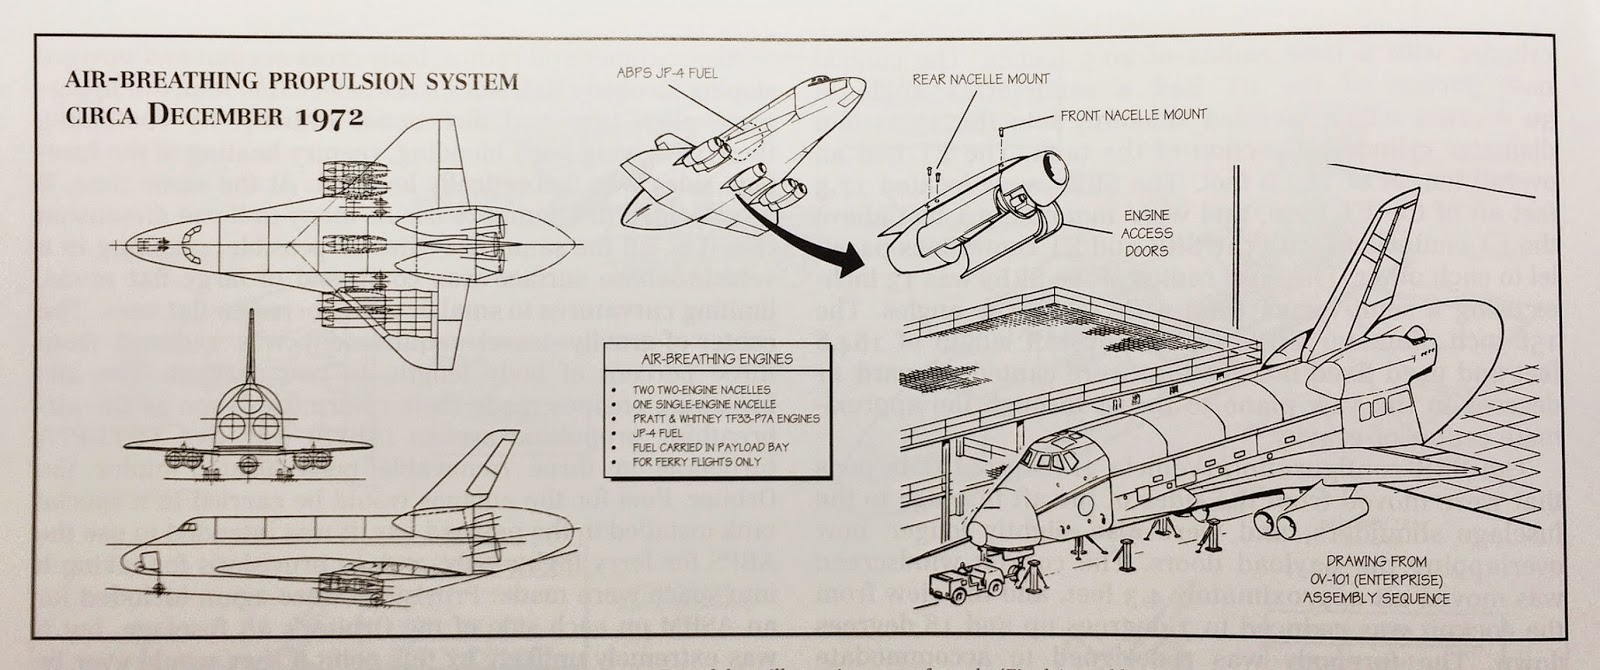 tf33 engine diagram wiring library B-52H Engines the final iteration of a jet engine powered shuttle orbiter (from the dennis jenkins